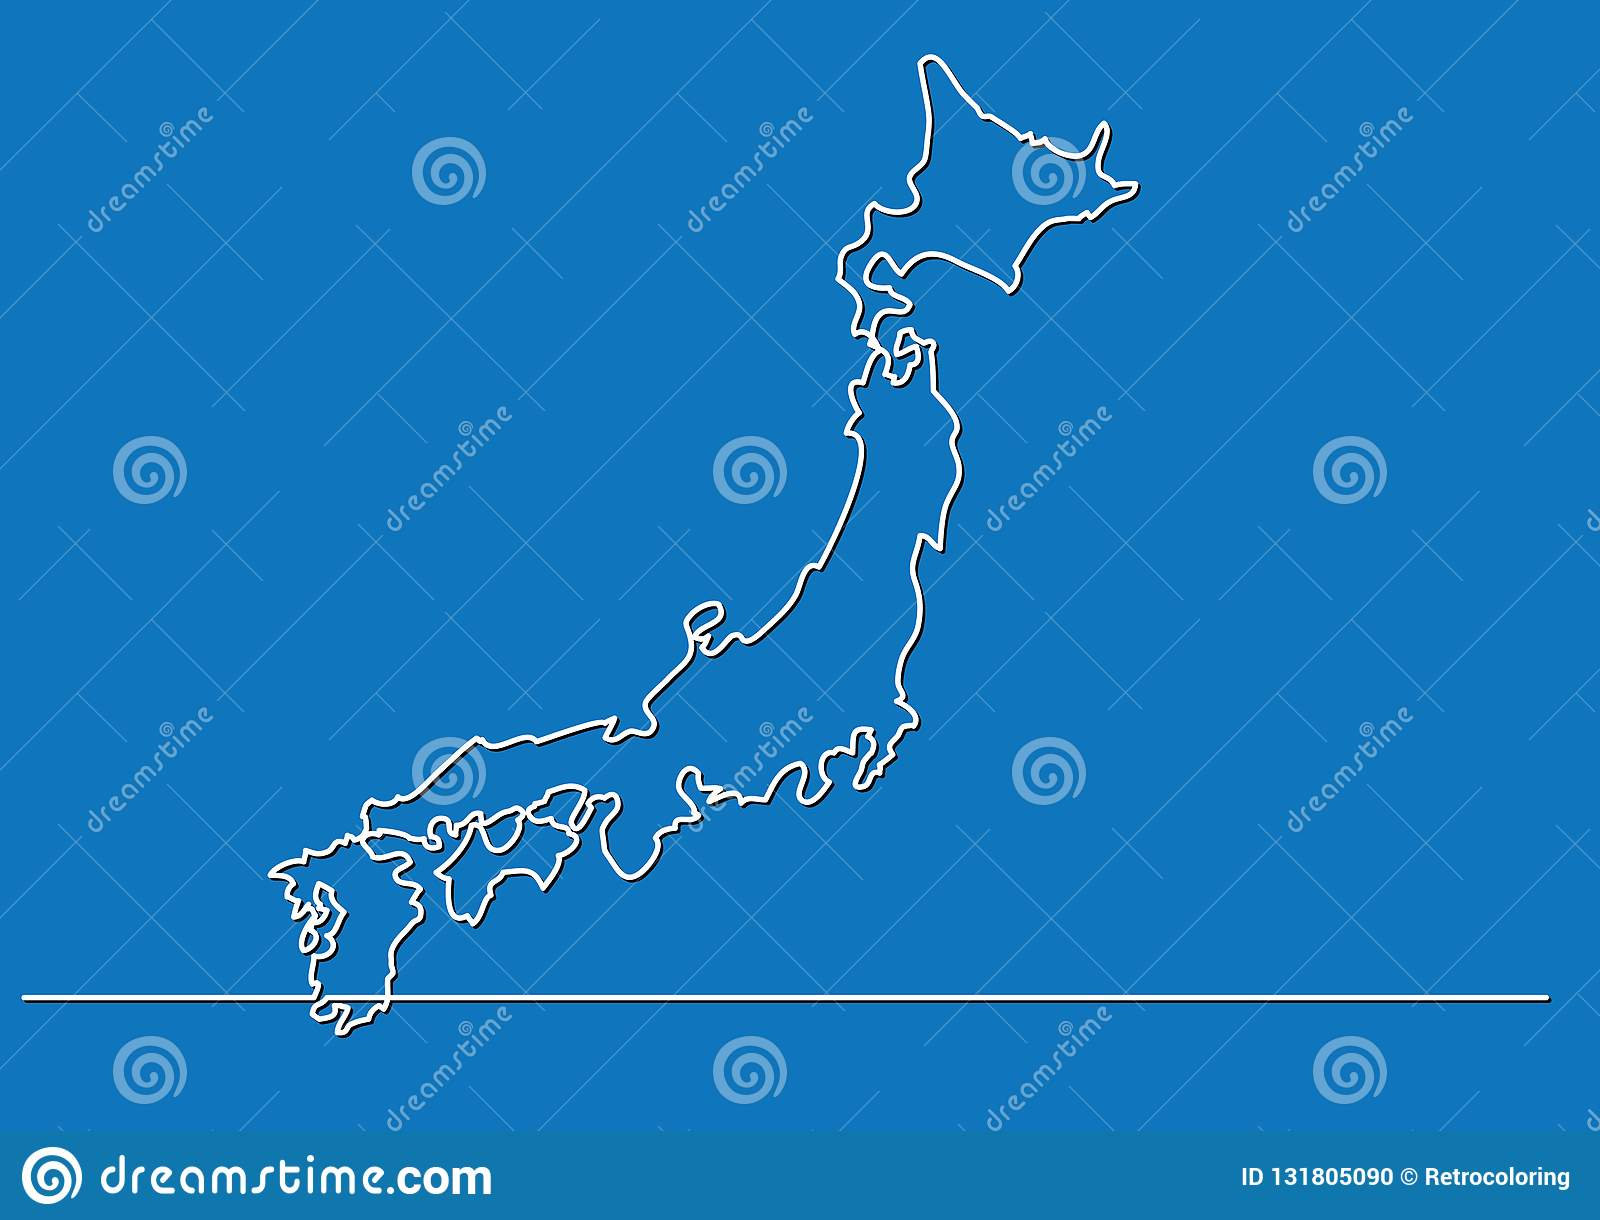 Continuous line drawing - map of Japan